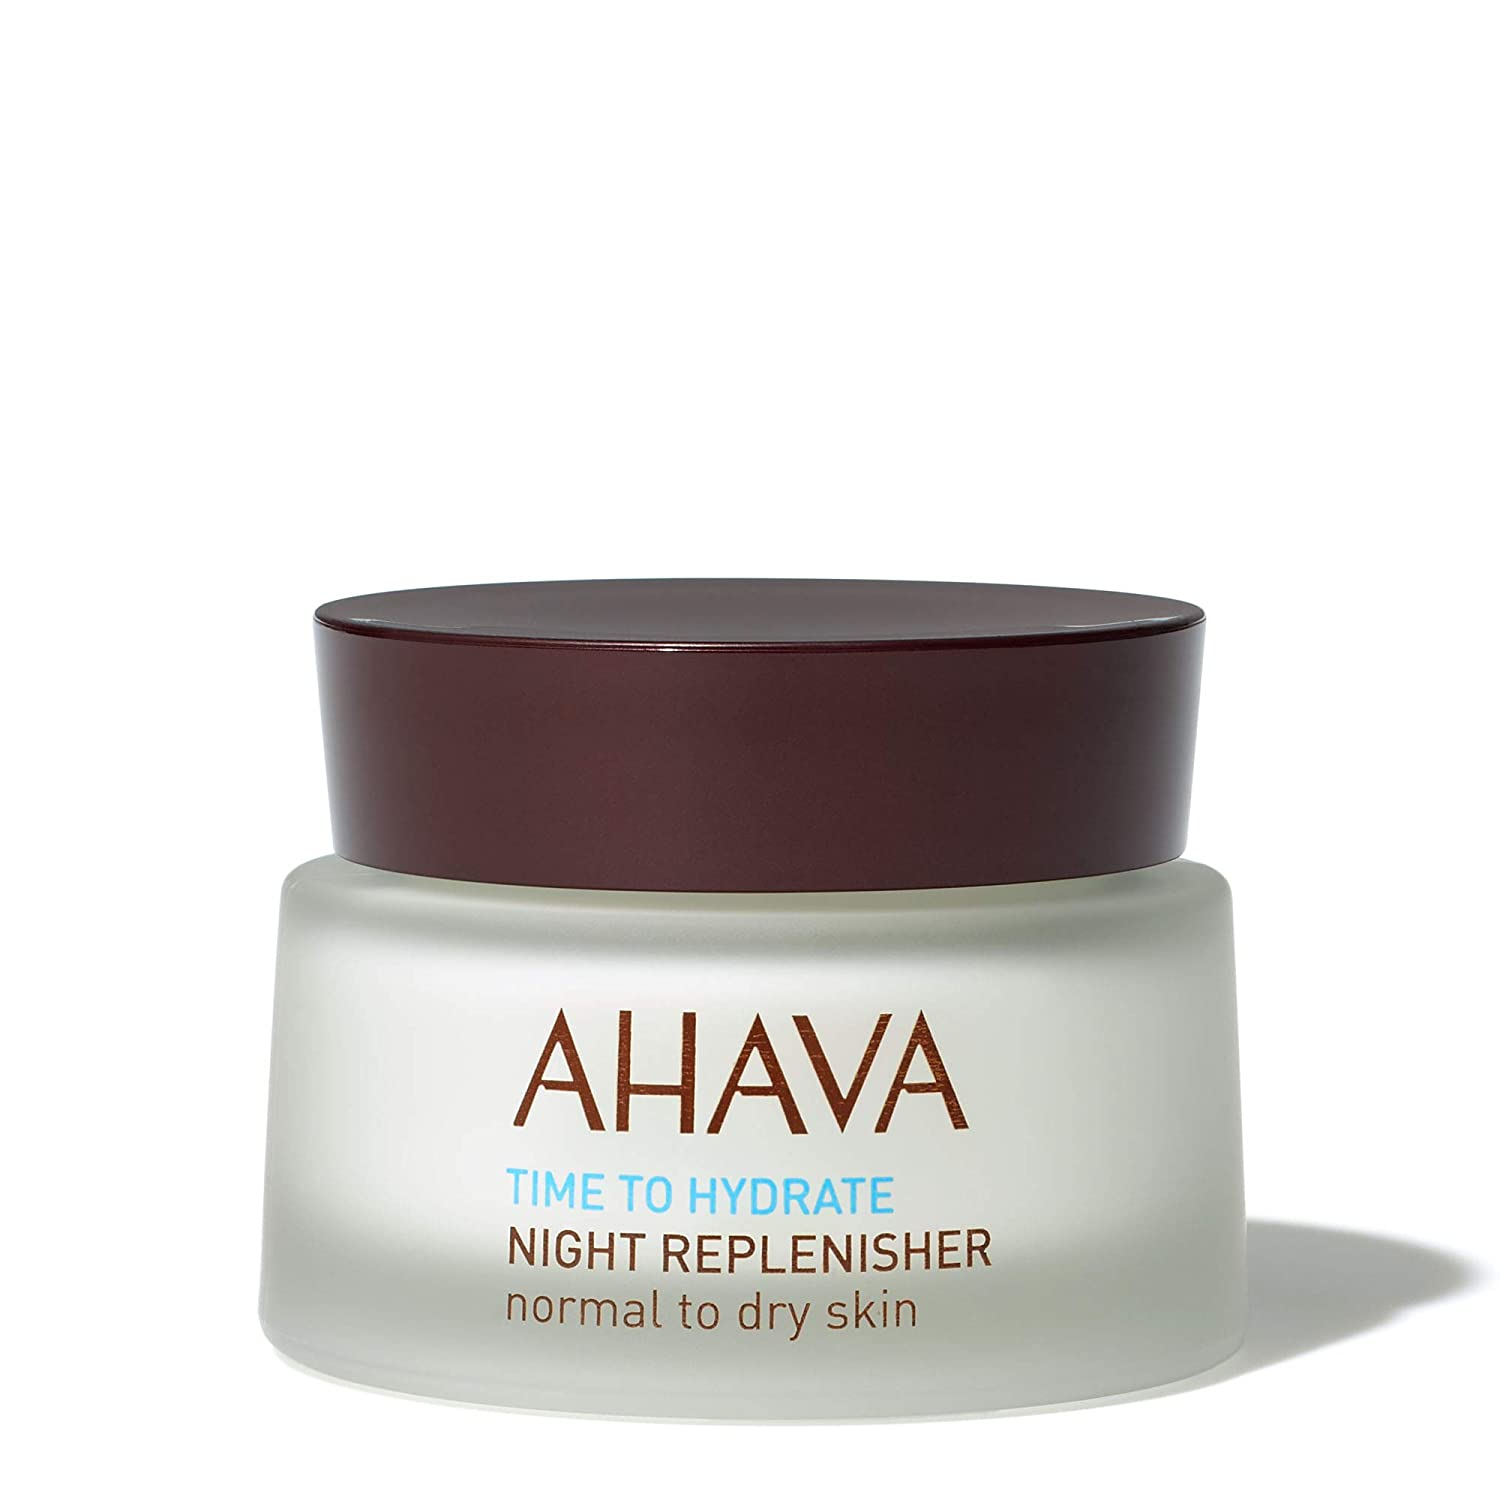 AHAVA Night Replenisher Normal to Dry Skin 50 ml Natural Dead Sea Facial Cream [Face & Neck] Anti Ageing, Moisturising, Protective Nightly Routine for Women and Men Dead Sea Laboratories Ltd 80415066 AHV00041